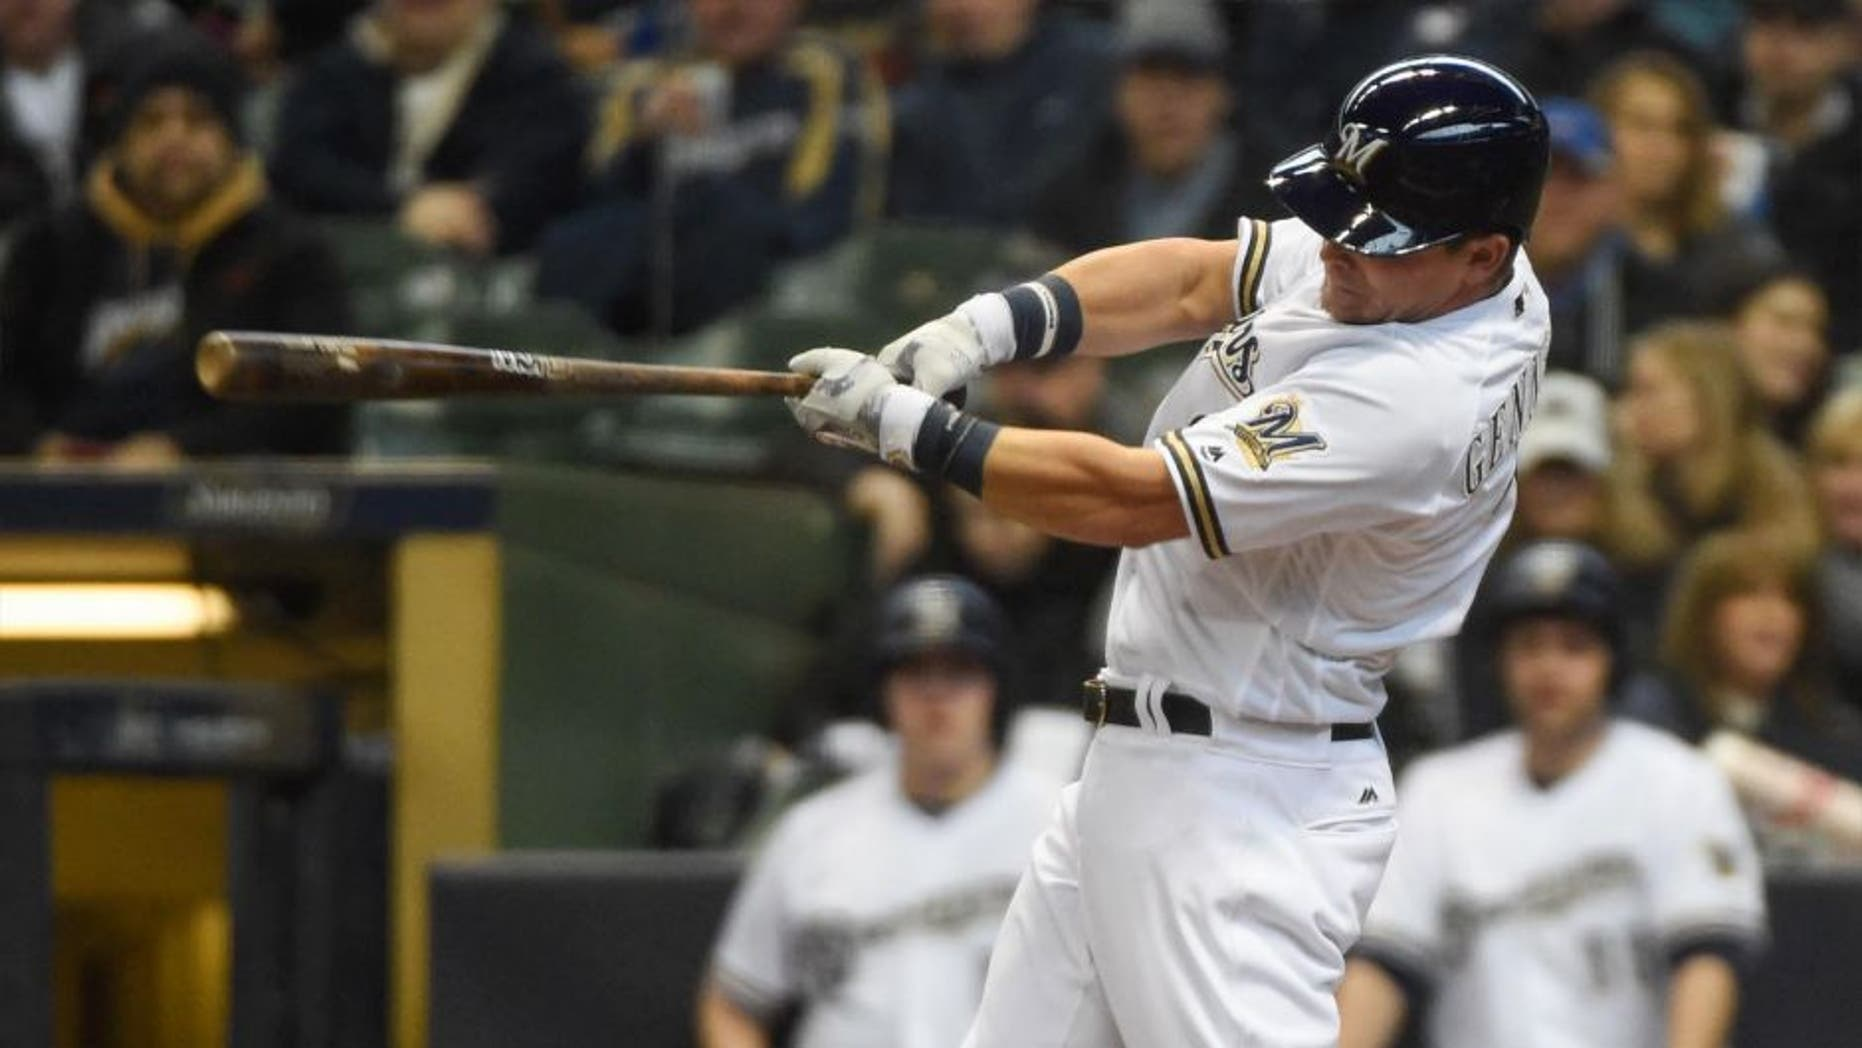 Monday, April 4: Milwaukee Brewers second baseman Scooter Gennett hits a solo home run in the second inning against the San Francisco Giants at Miller Park in Milwaukee.